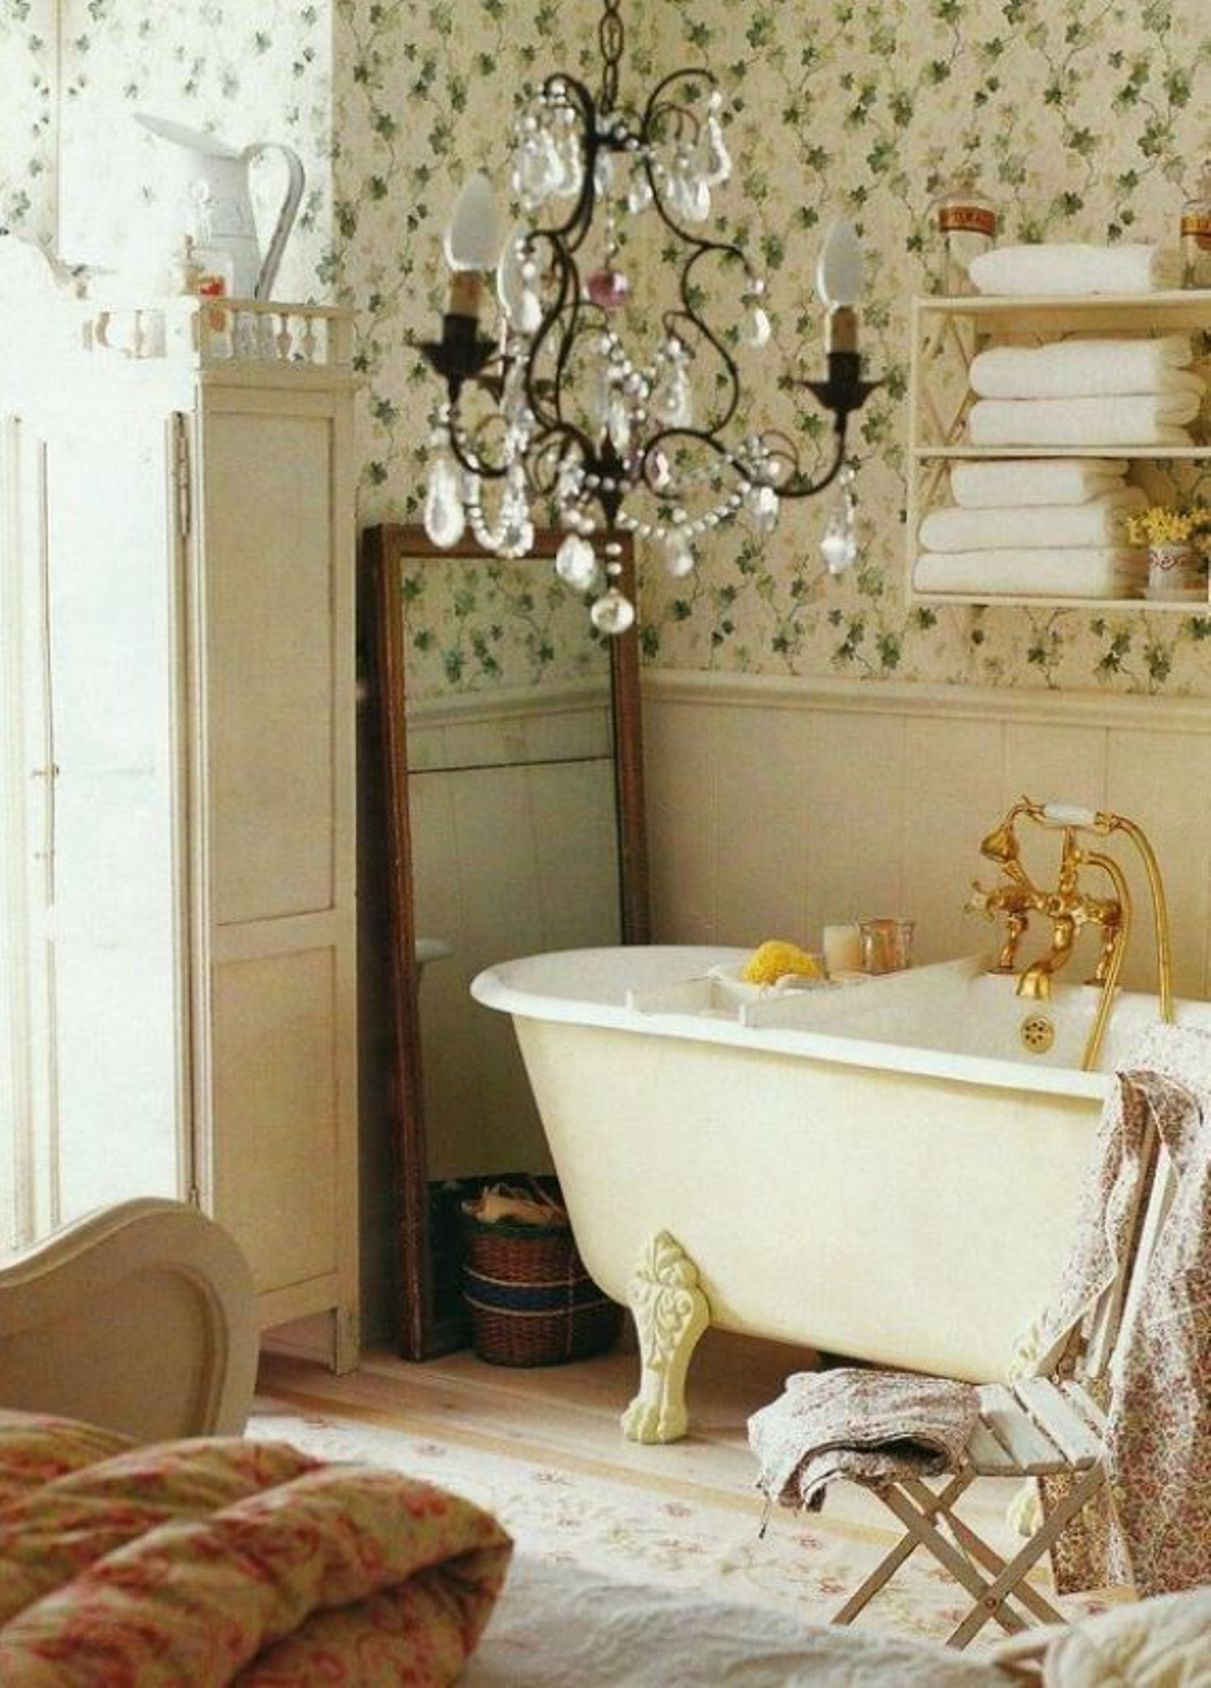 30 shabby chic bathroom design ideas to get inspired Bathroom decor ideas images